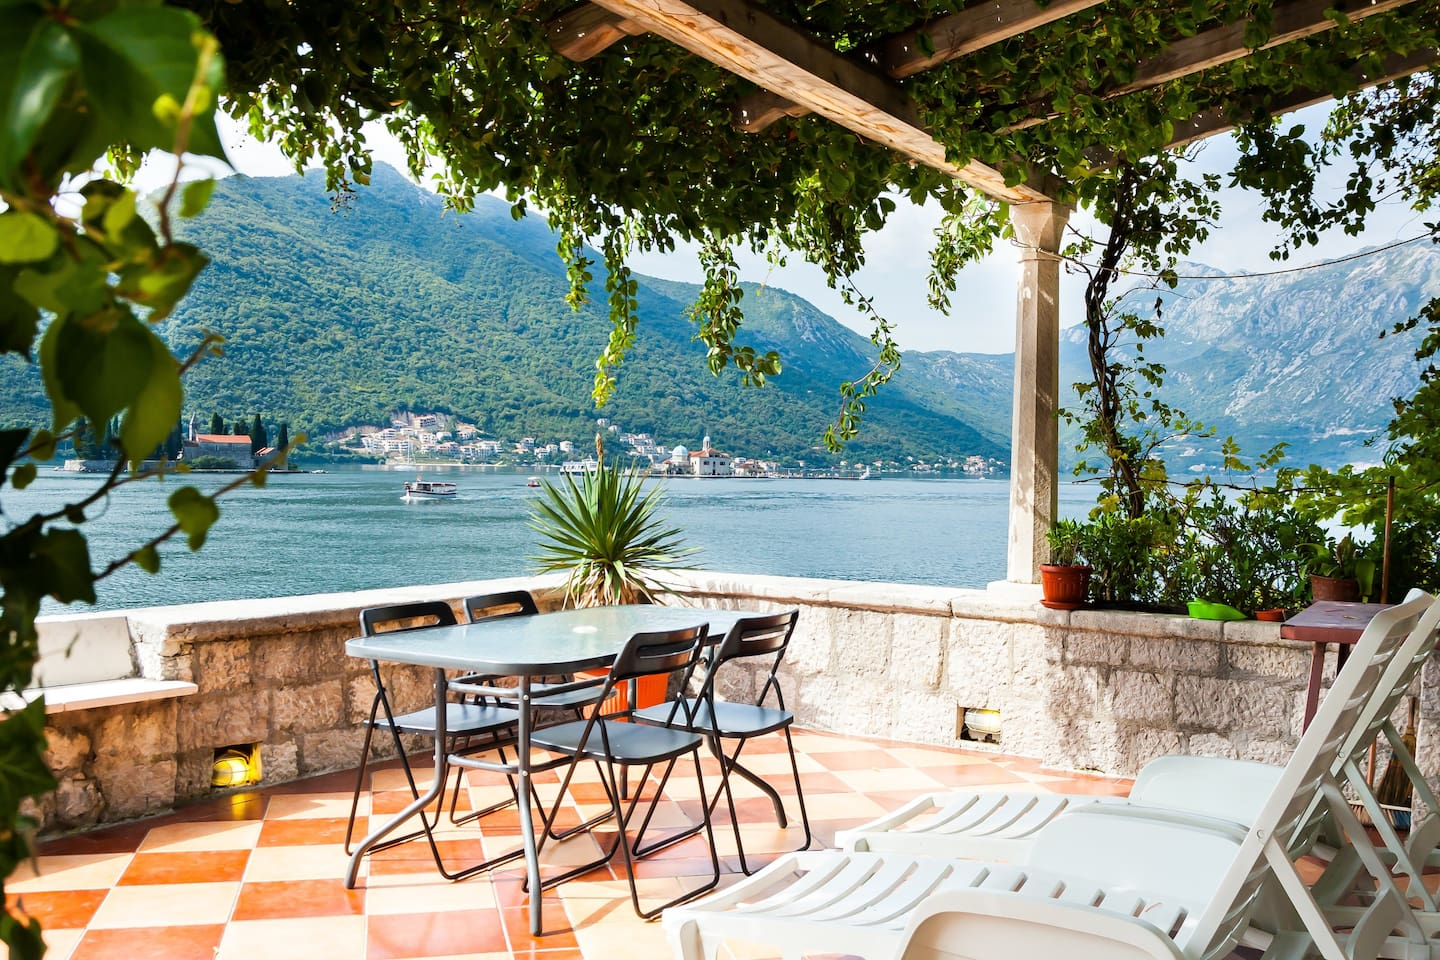 Private terrace of the apartment for relaxing, enjoying amazing views & soaking up some sun!